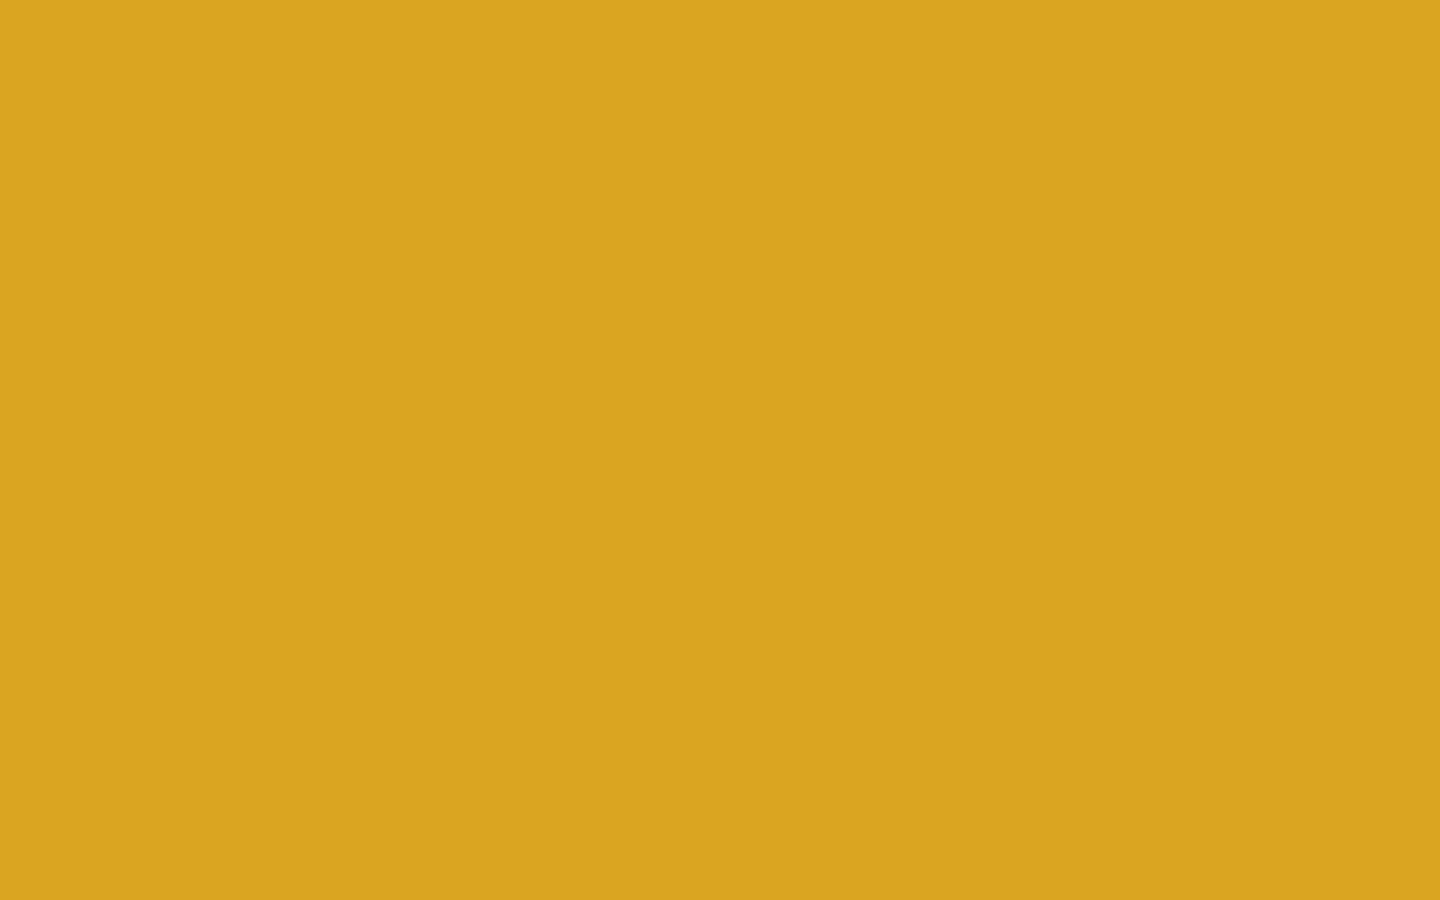 1440x900 Goldenrod Solid Color Background